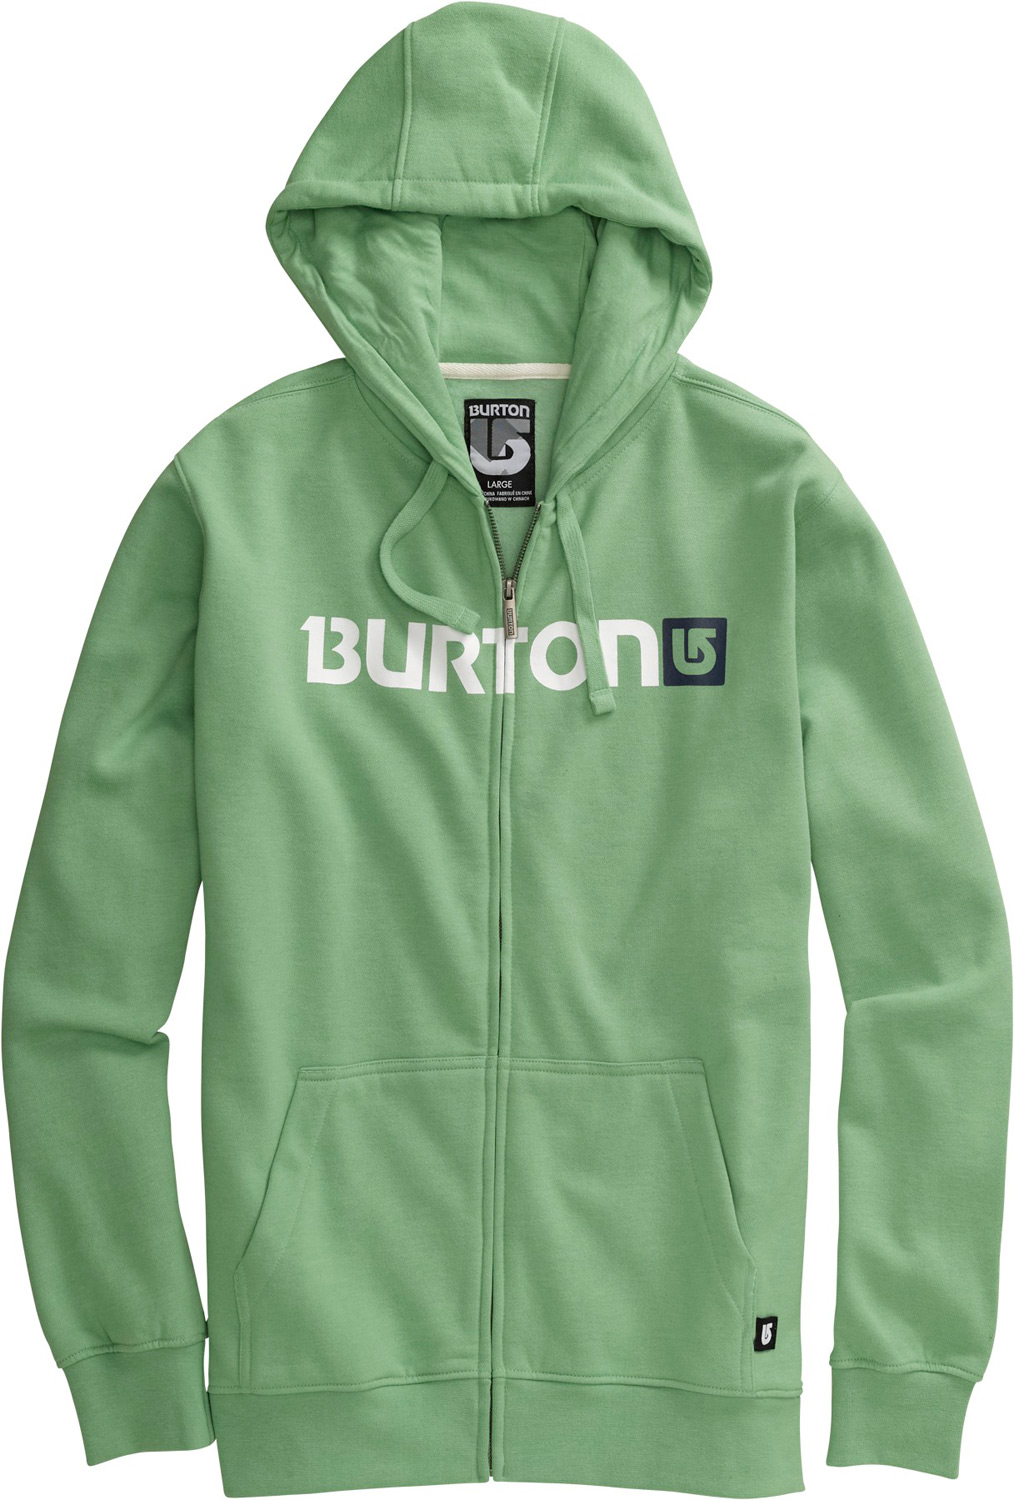 Snowboard Key Features of the Burton Logo Horizontal Hoodie: 80% Cotton/20% Polyester, 300G Fleece Kangaroo Hand Warmer Pocket w/Interior Media Stash Signature Fit Hidden Side Seam Stash Pocket Word Marker Logo Print on Chest S-XL - $39.95